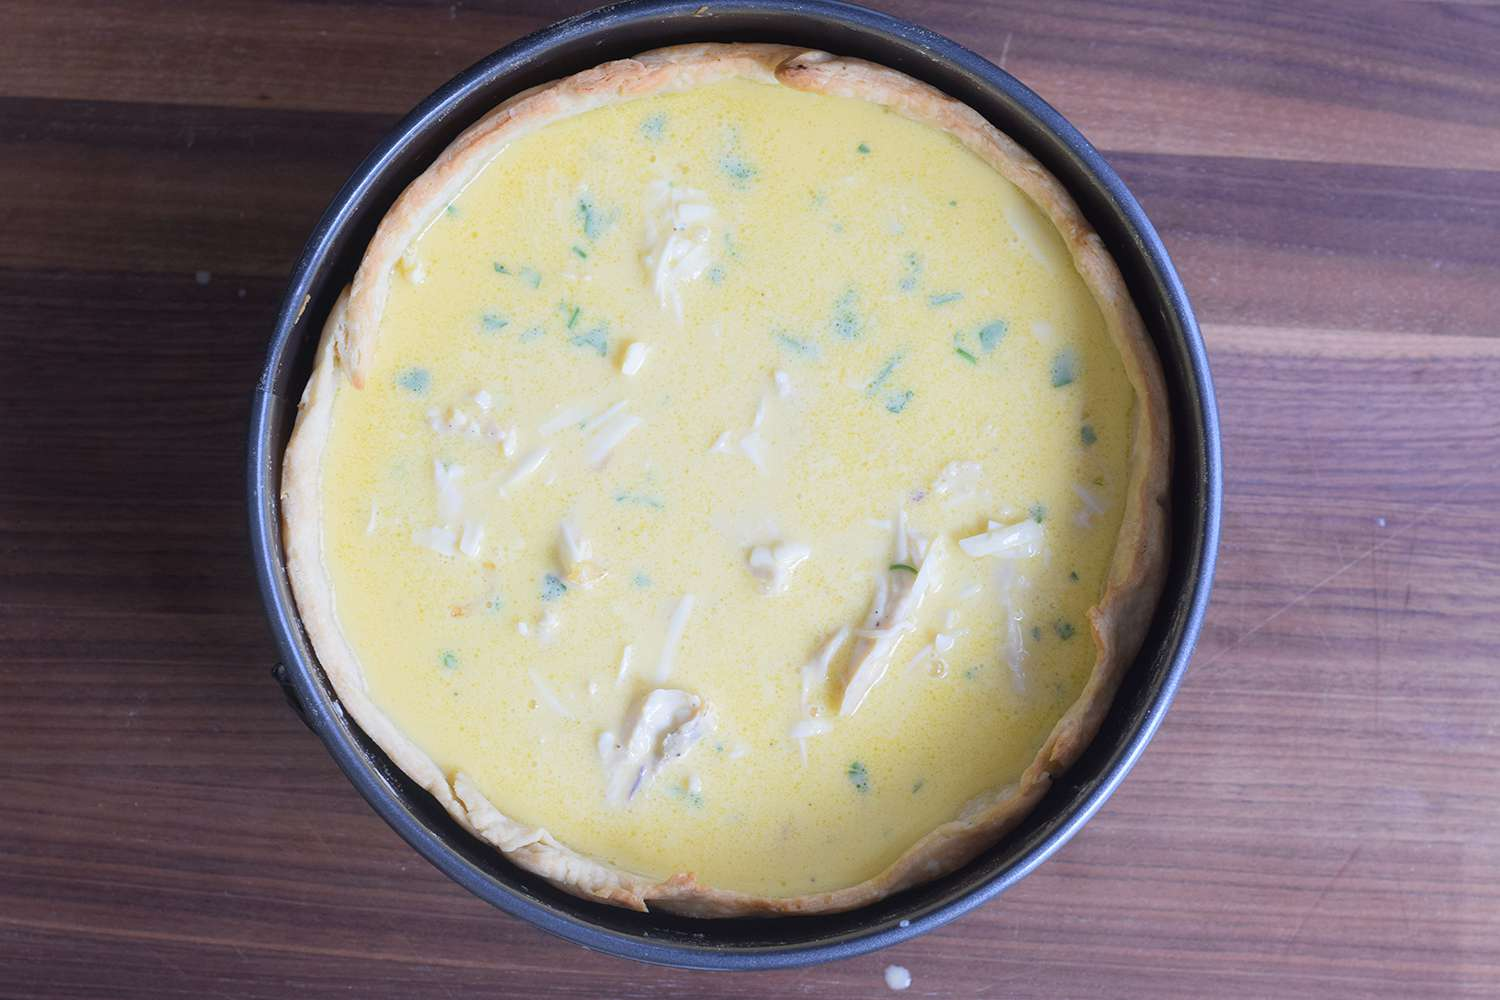 Pour the custard into the cooled pie crust